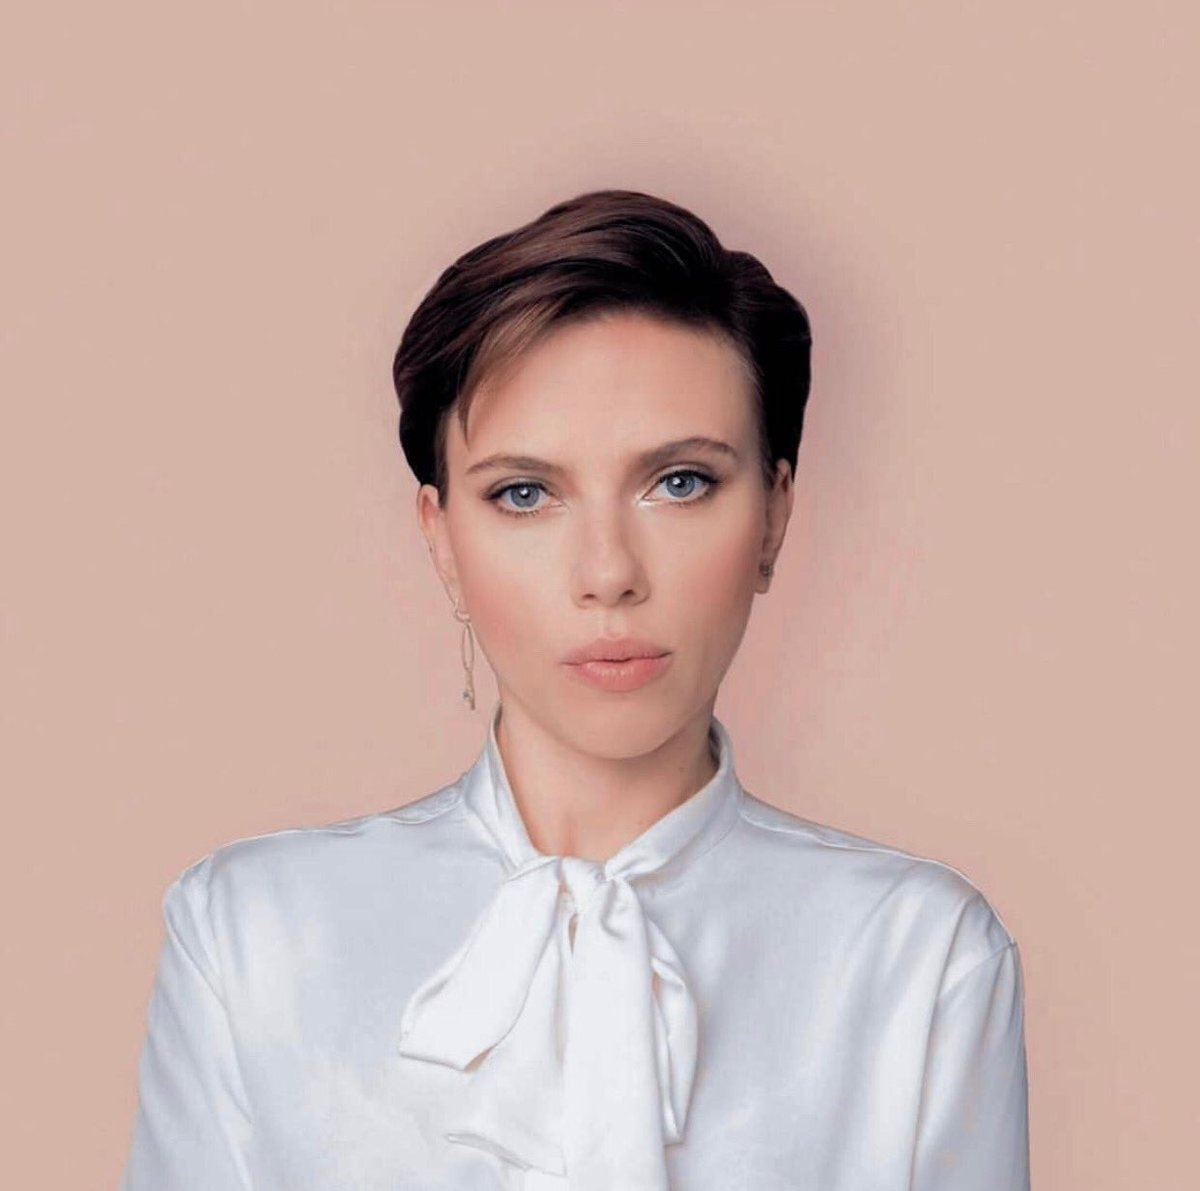 this is the most beautiful thing you will see today  #SCARLETTJOHANSSON pic.twitter.com/IXT09tGVqT